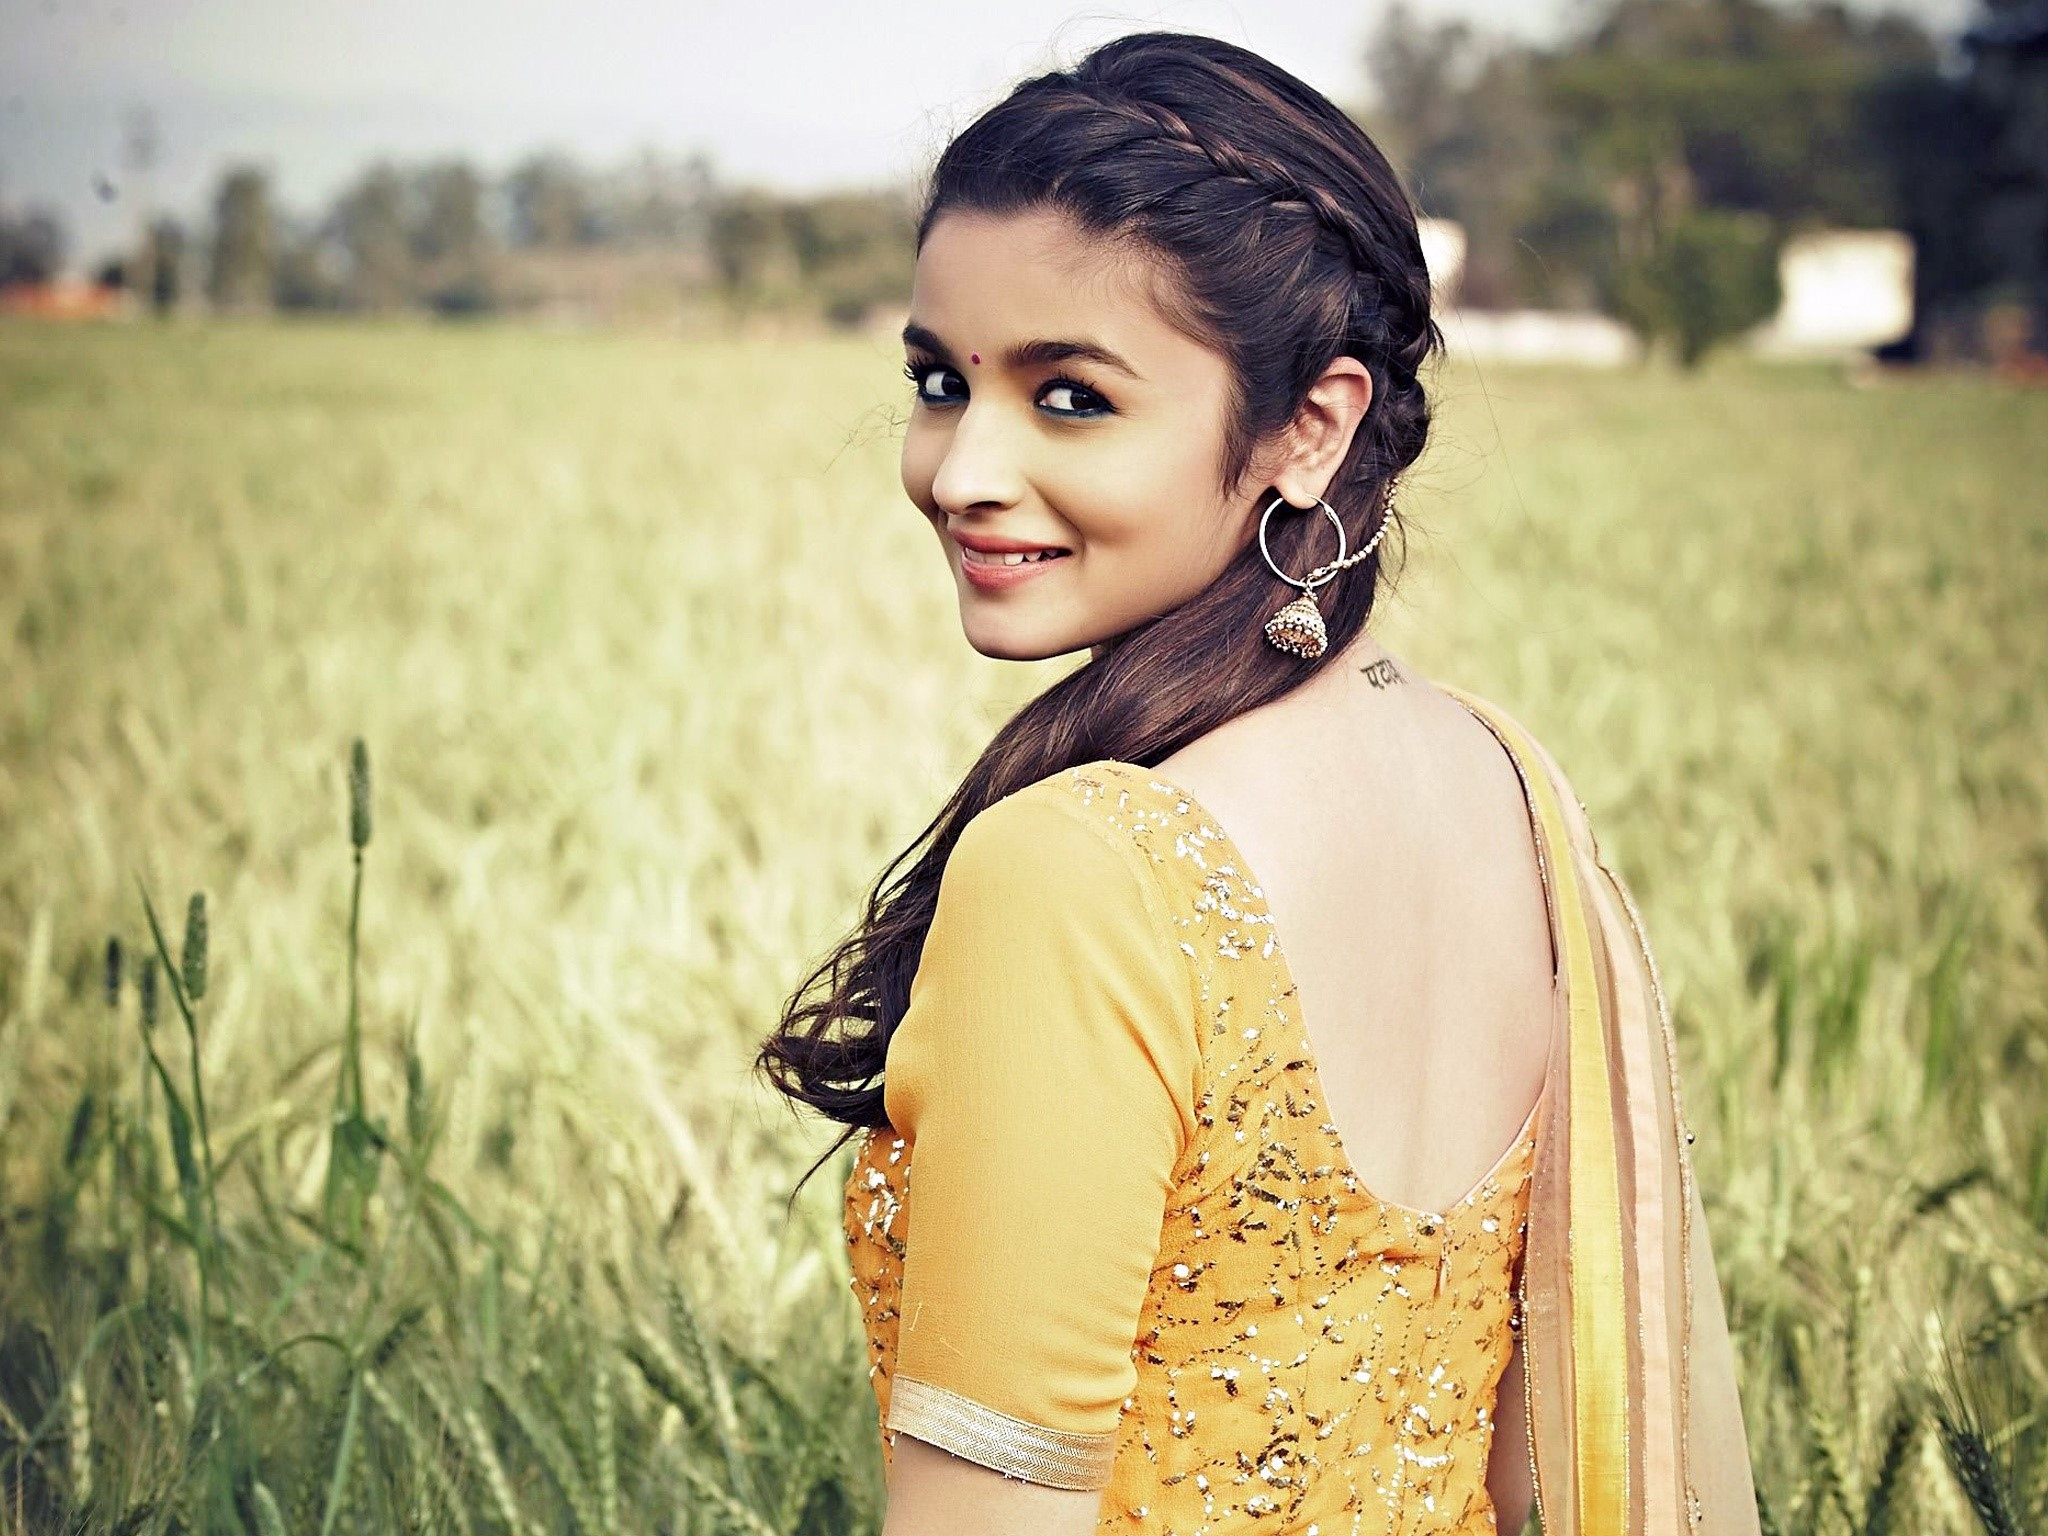 Wallpaper Alia Bhatt in Humpty Sharma Ki Dulhania